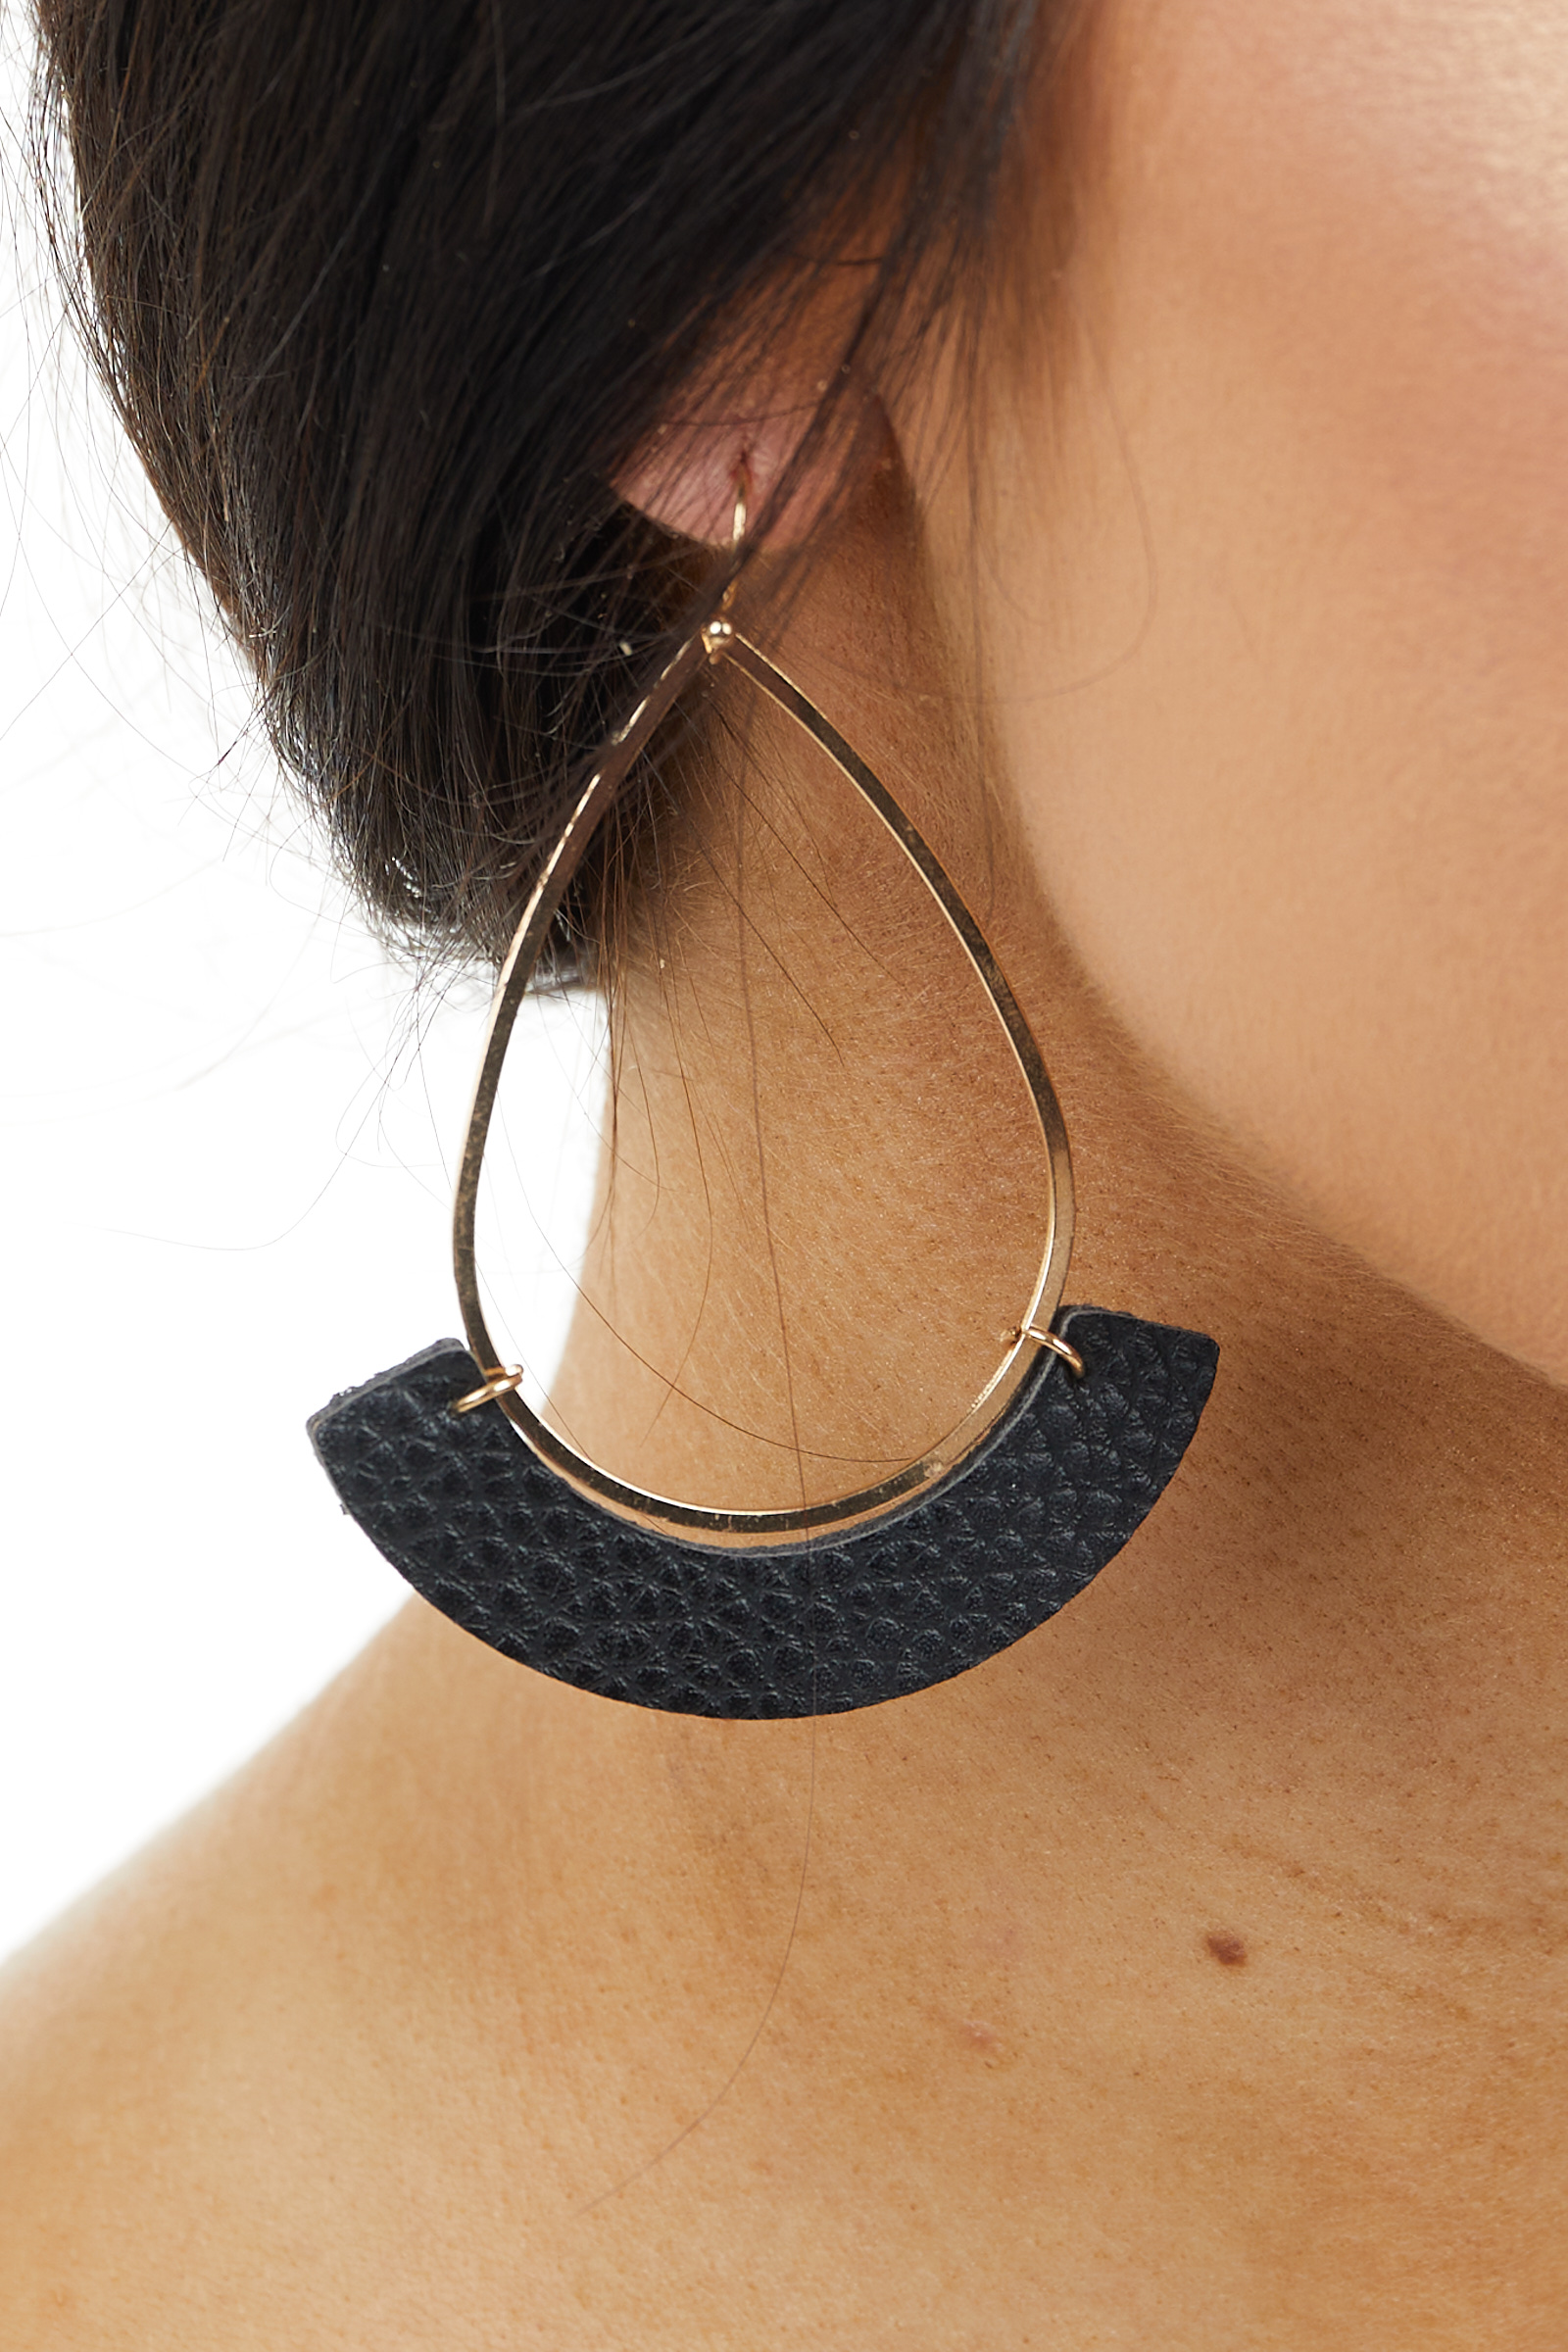 Gold Teardrop Earring with Black Faux Leather Crescent